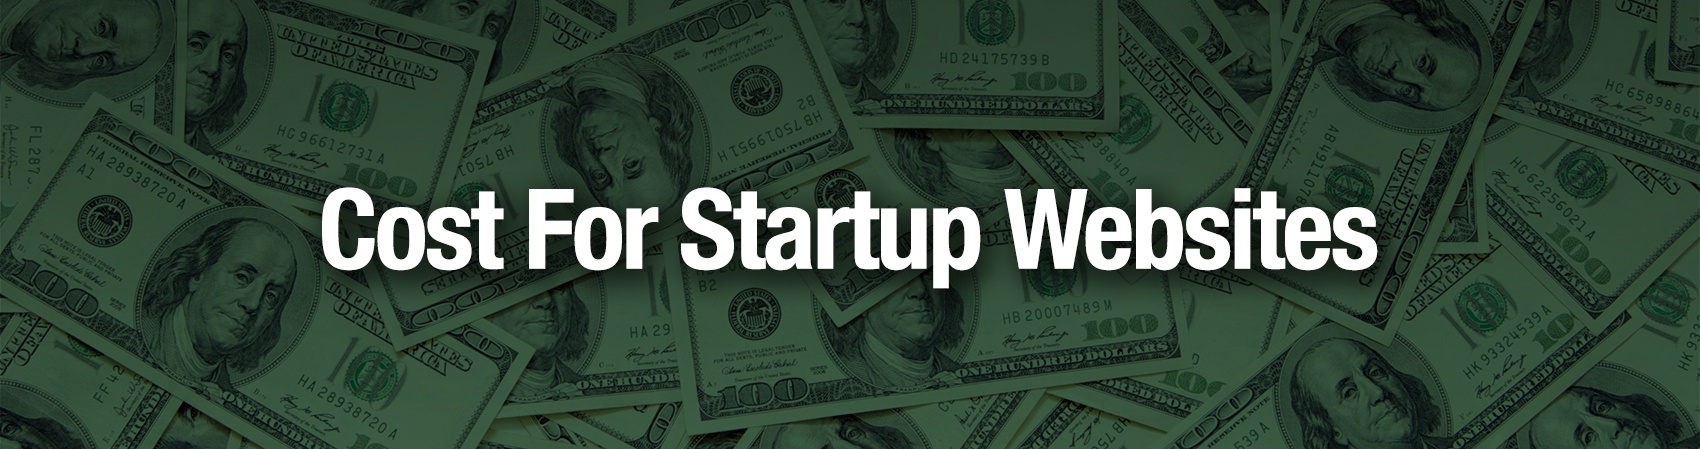 Cost-For-Startup-Websites